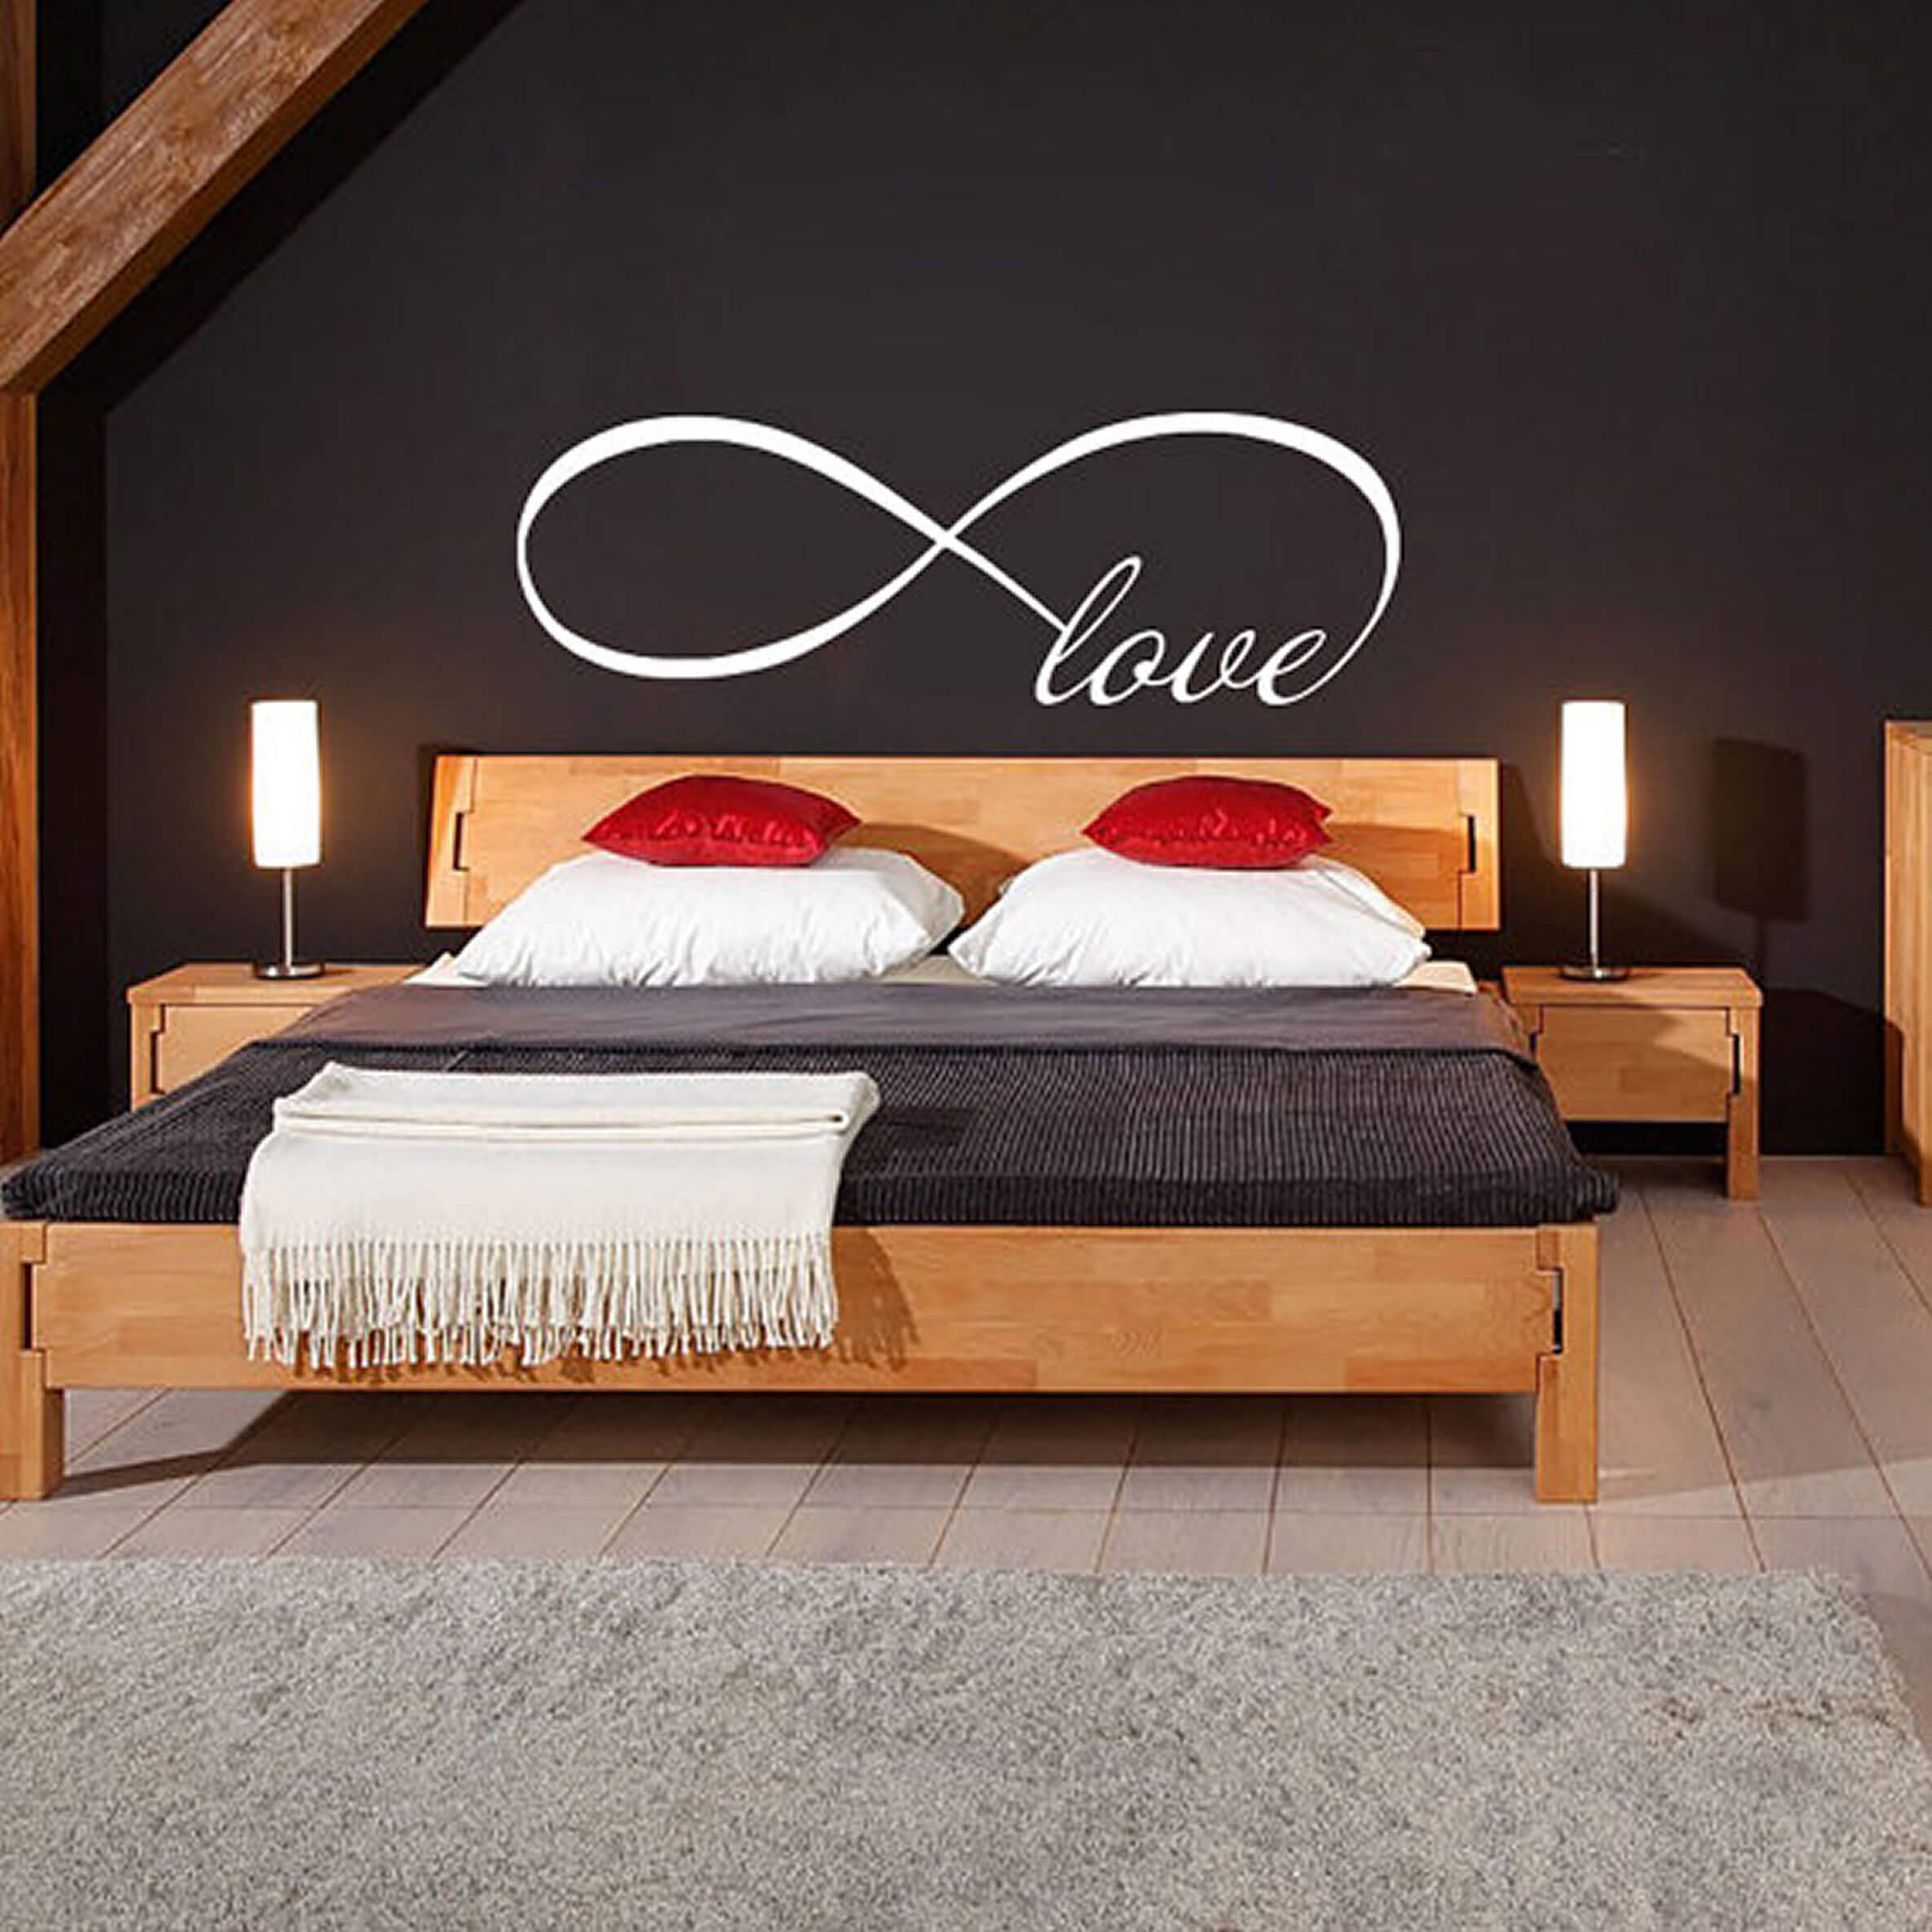 ... Wall Quotes/Love Wall Decals. ; 